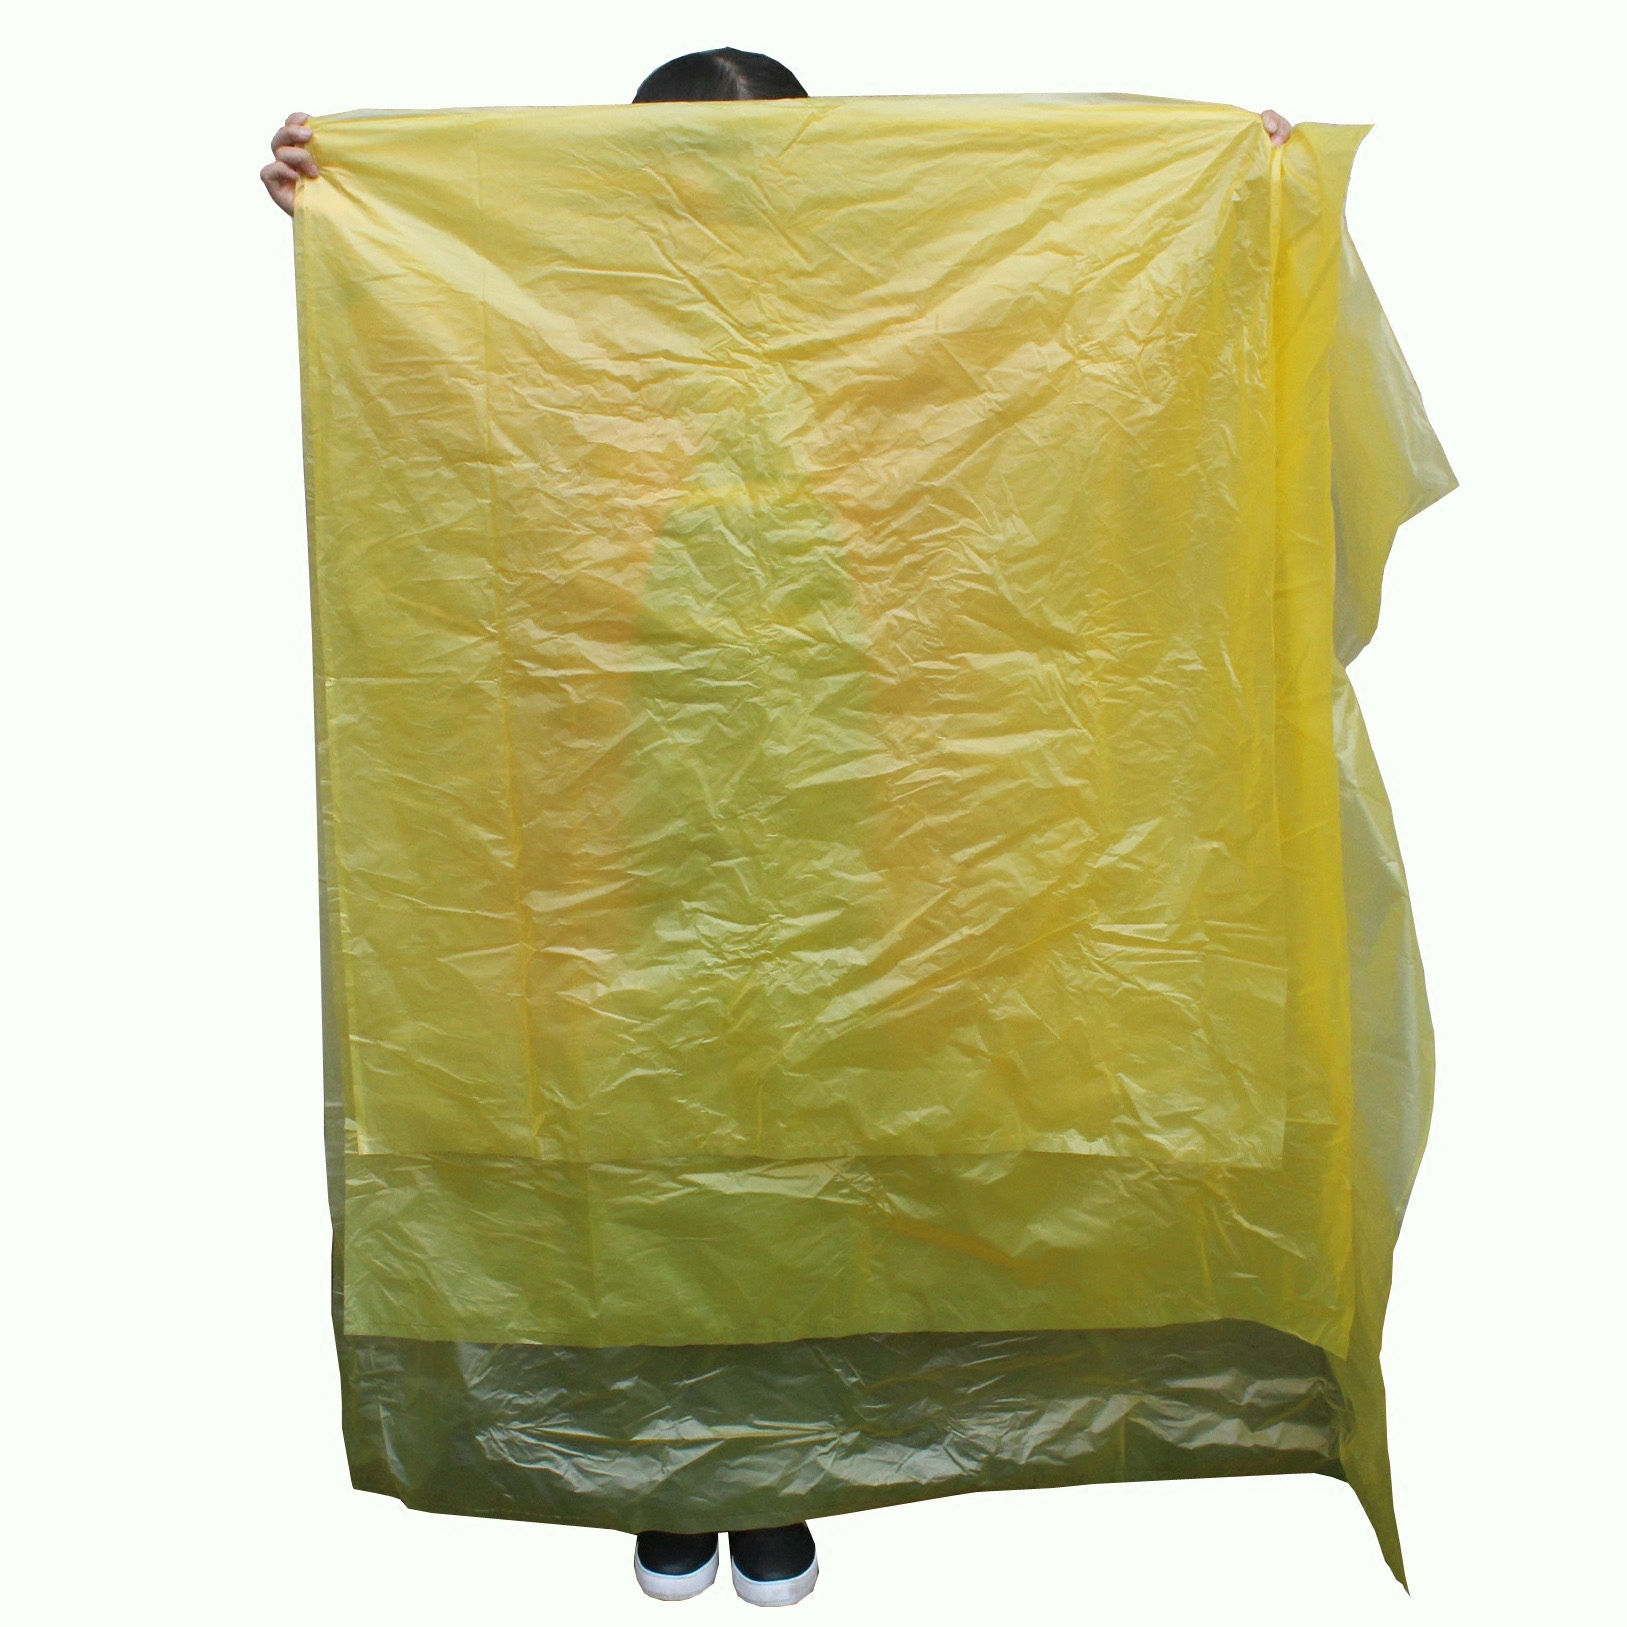 Flat yellow 120l 240l liter sanitation large garbage bags thicker plastic bags 80 liters 1 00L sanitation bags